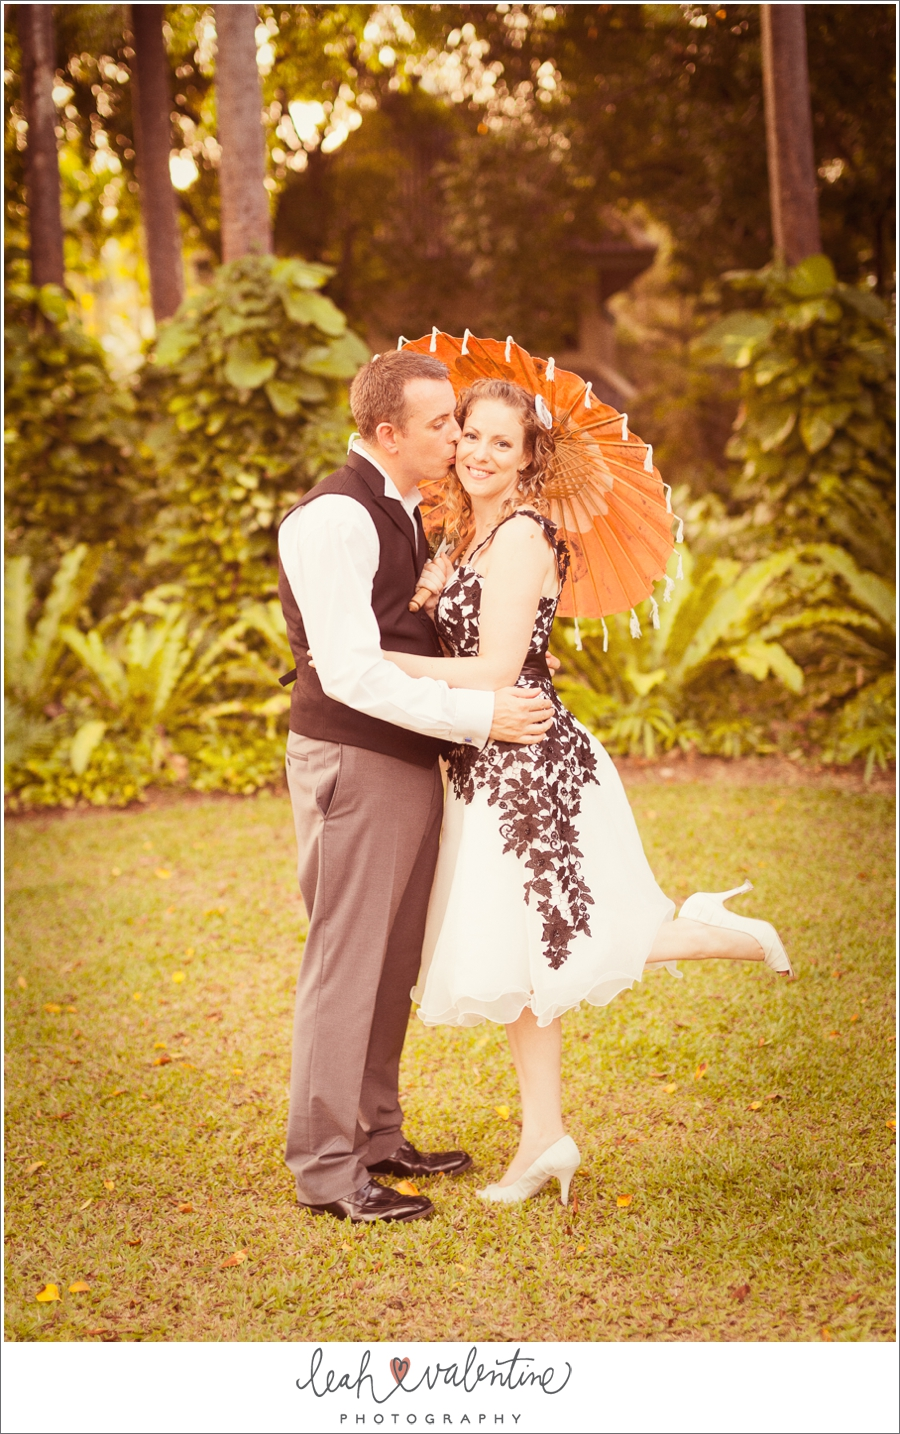 black and white wedding attire with a classic Thai umbrella at a Phuket, Thailand wedding